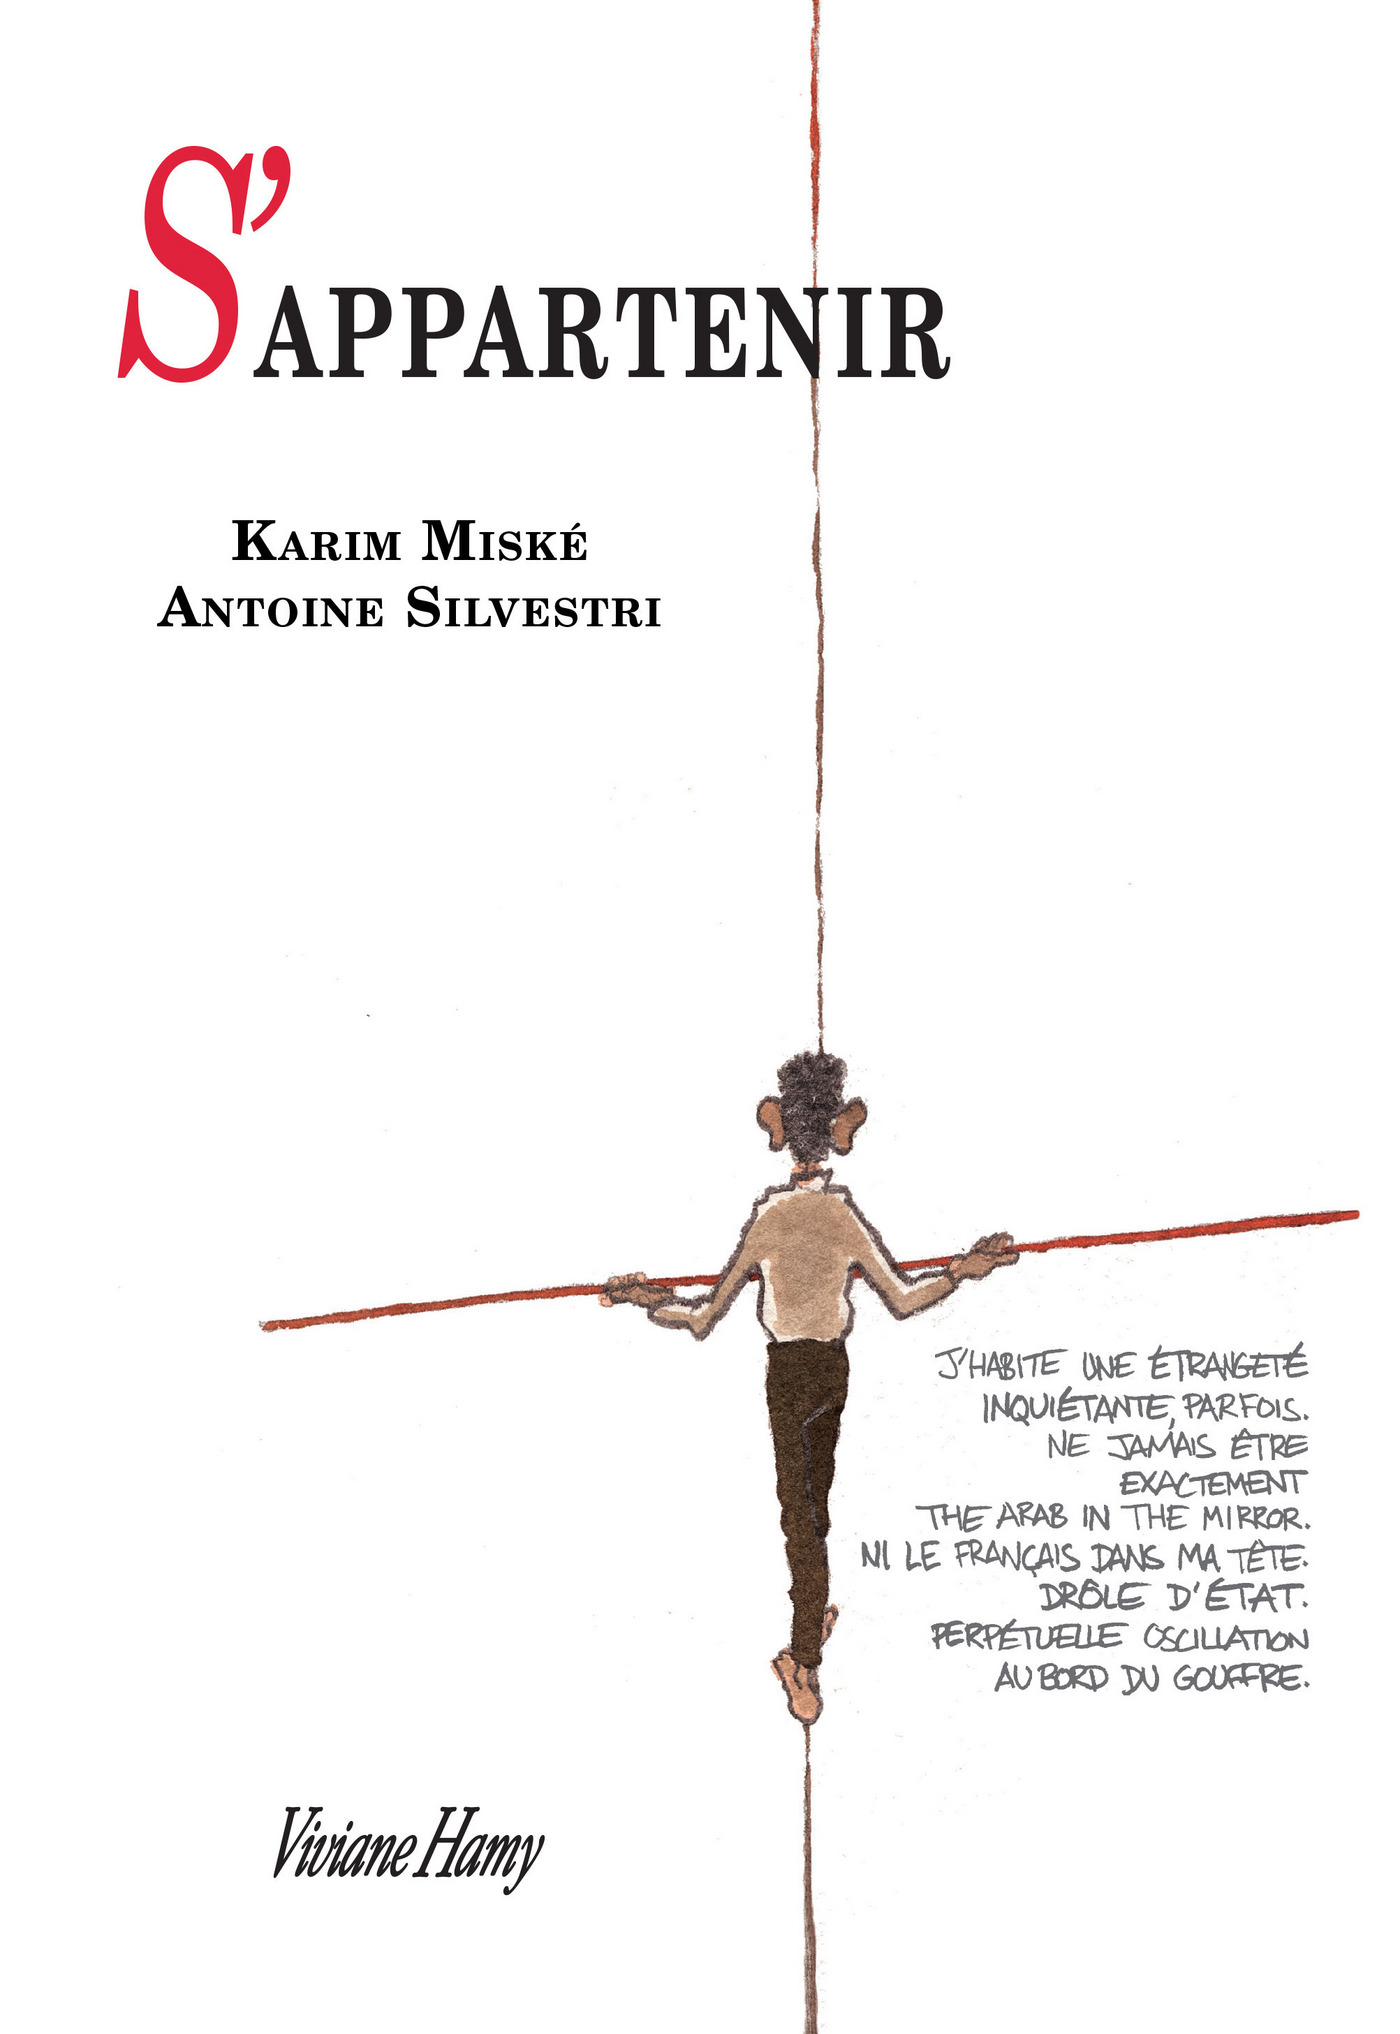 S'appartenir